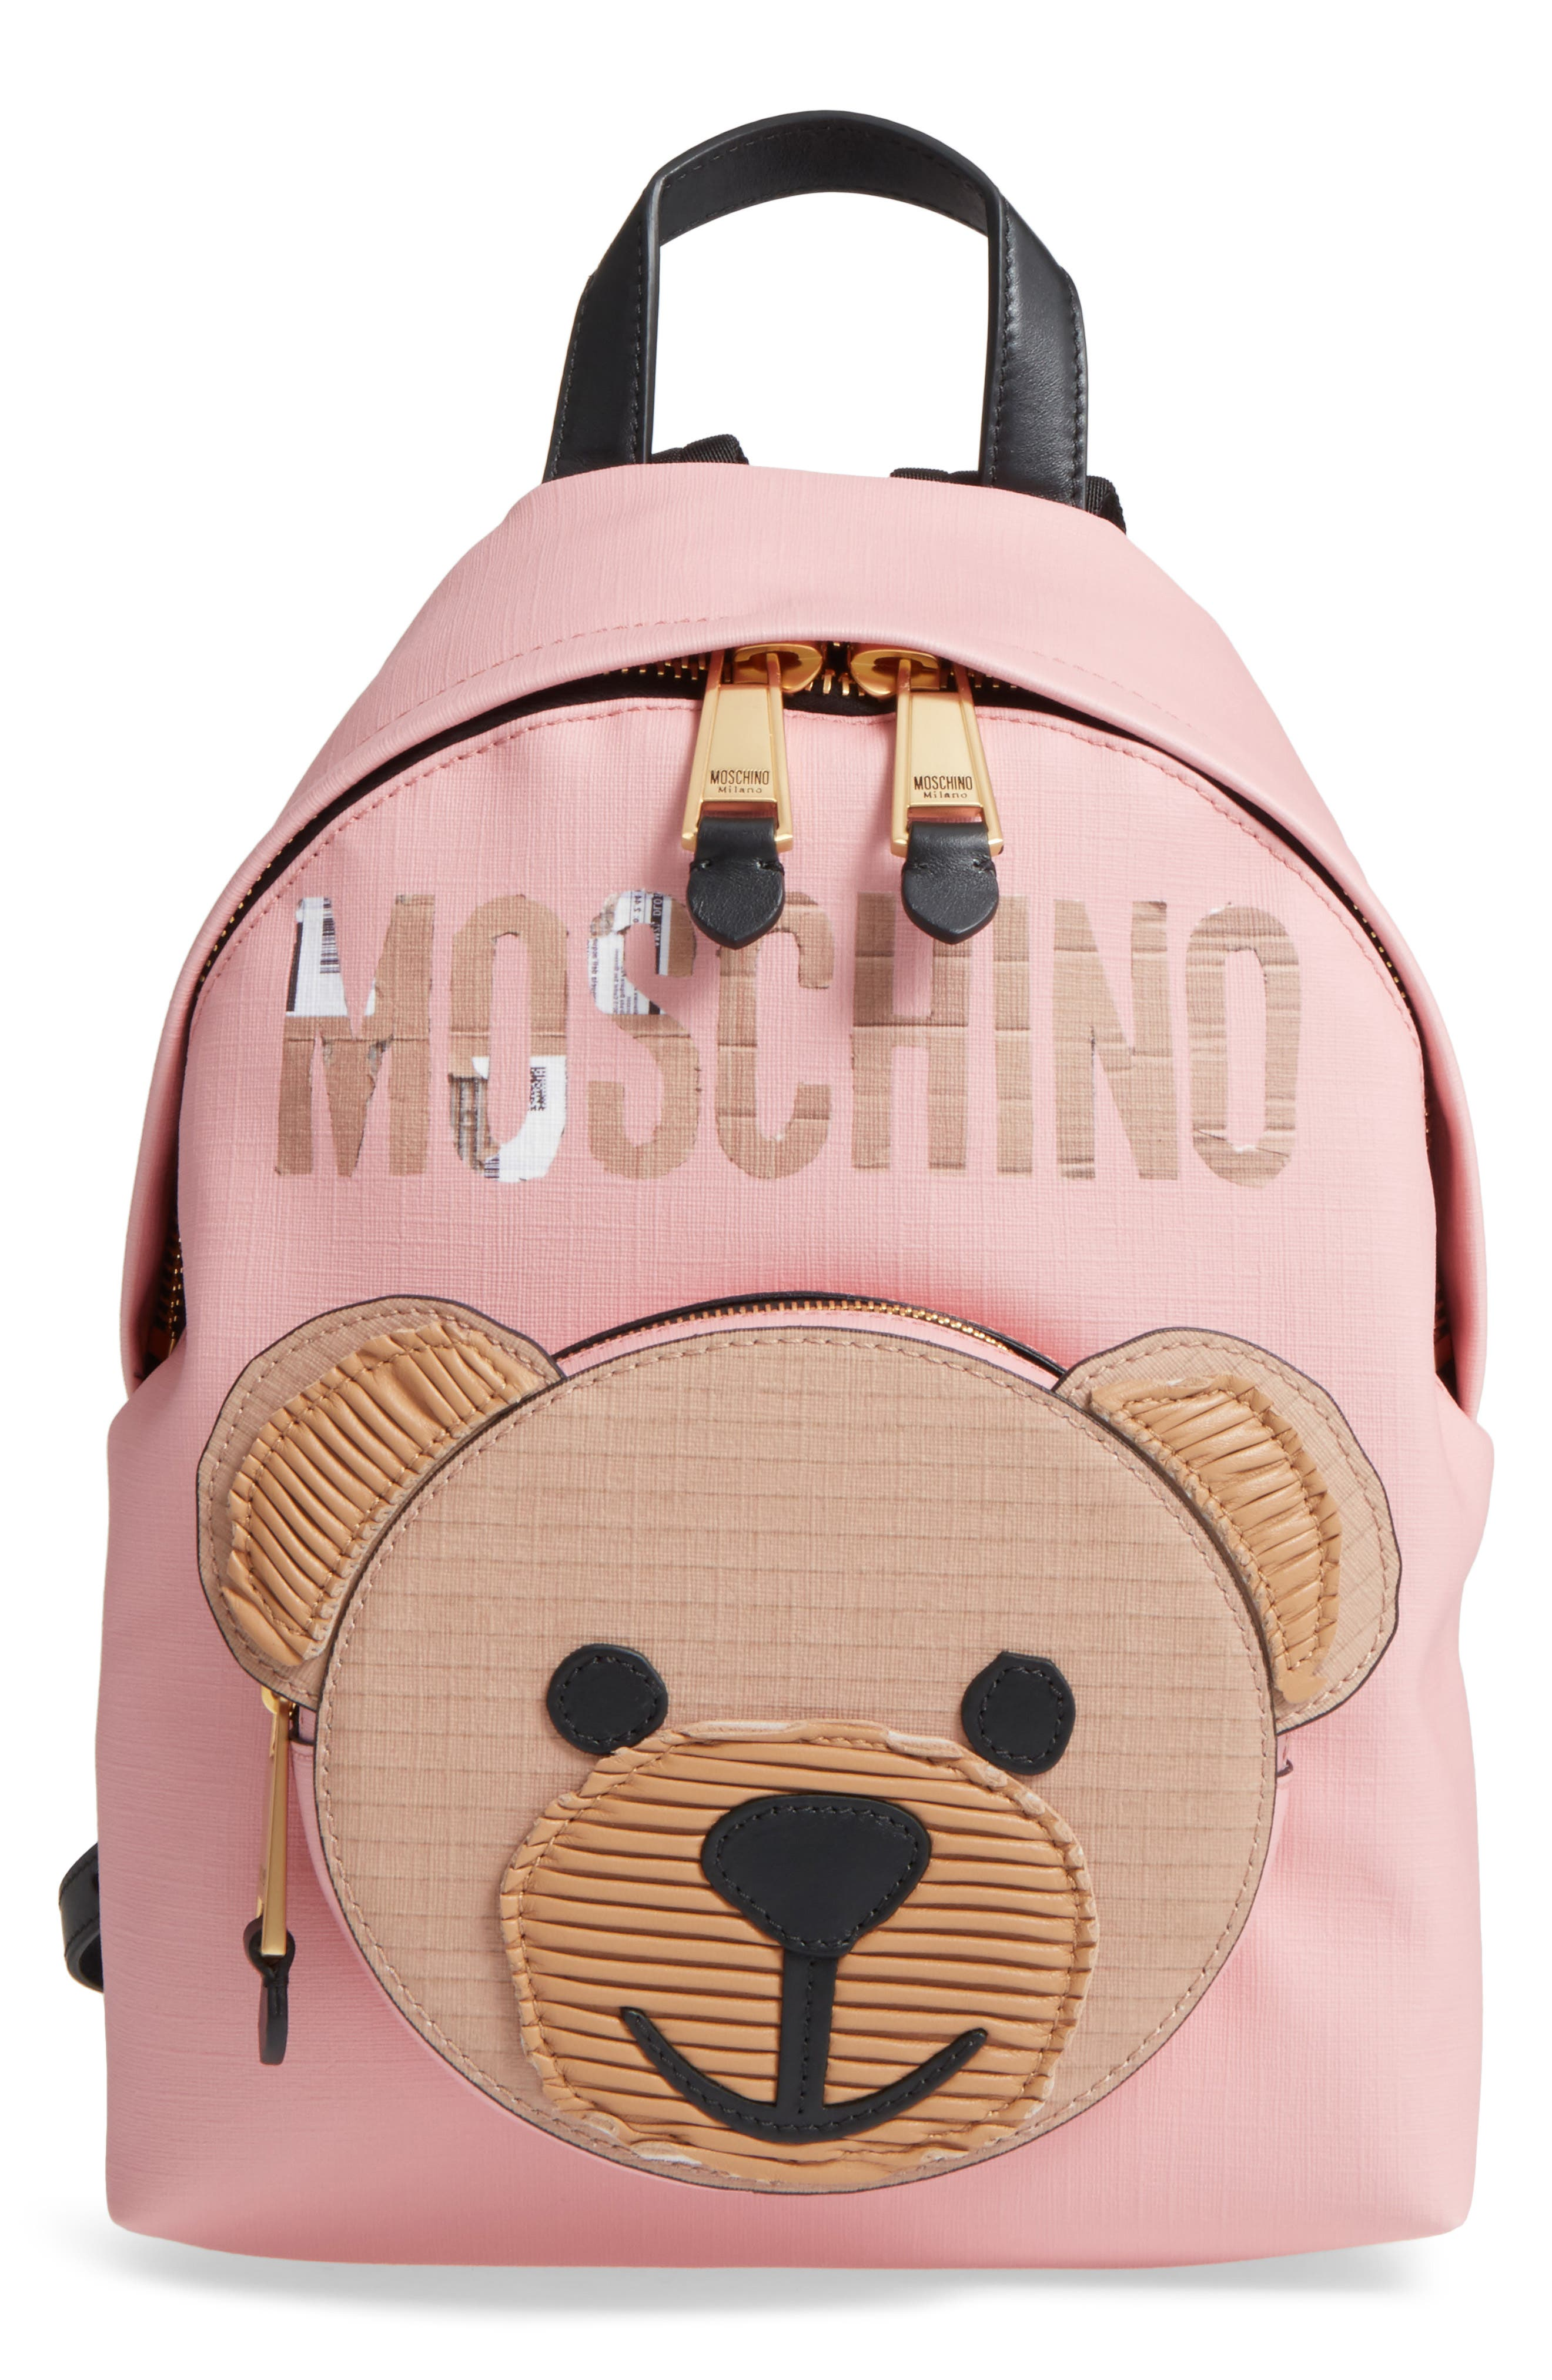 Cardboard Bear Leather Backpack,                             Main thumbnail 1, color,                             Pink/ Black